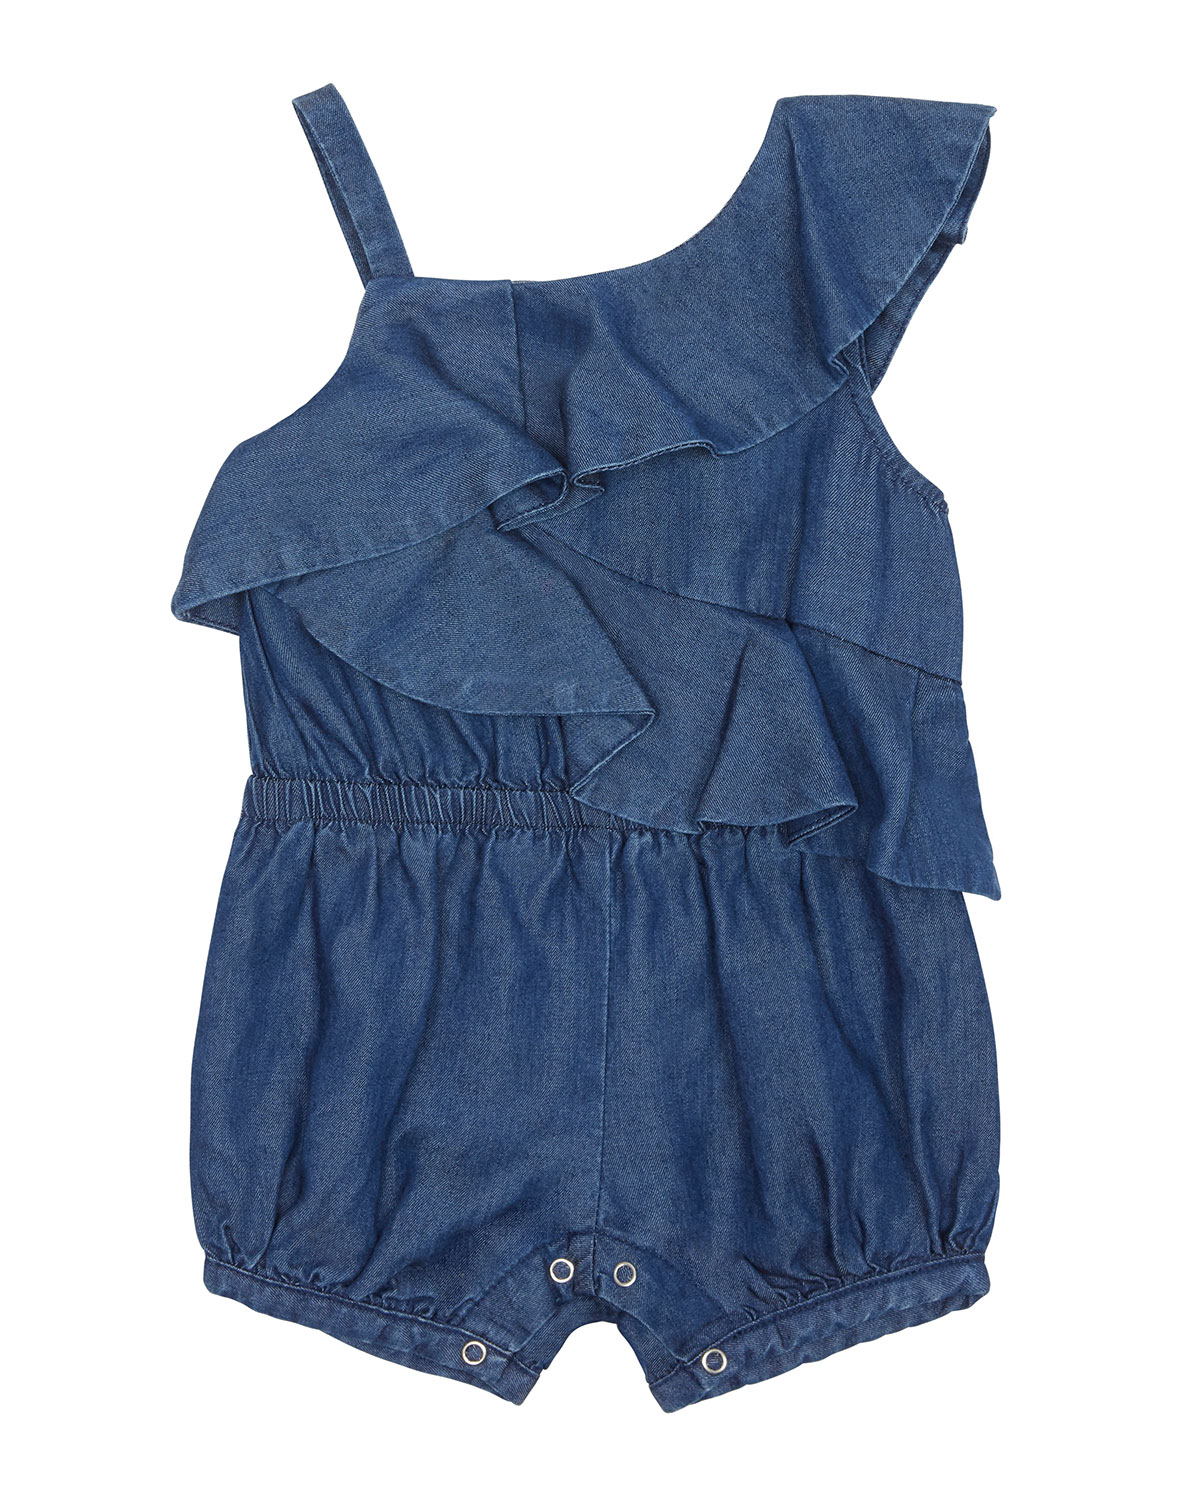 Antonella Chambray One Shoulder Romper, Size 12 24 Months by Habitual